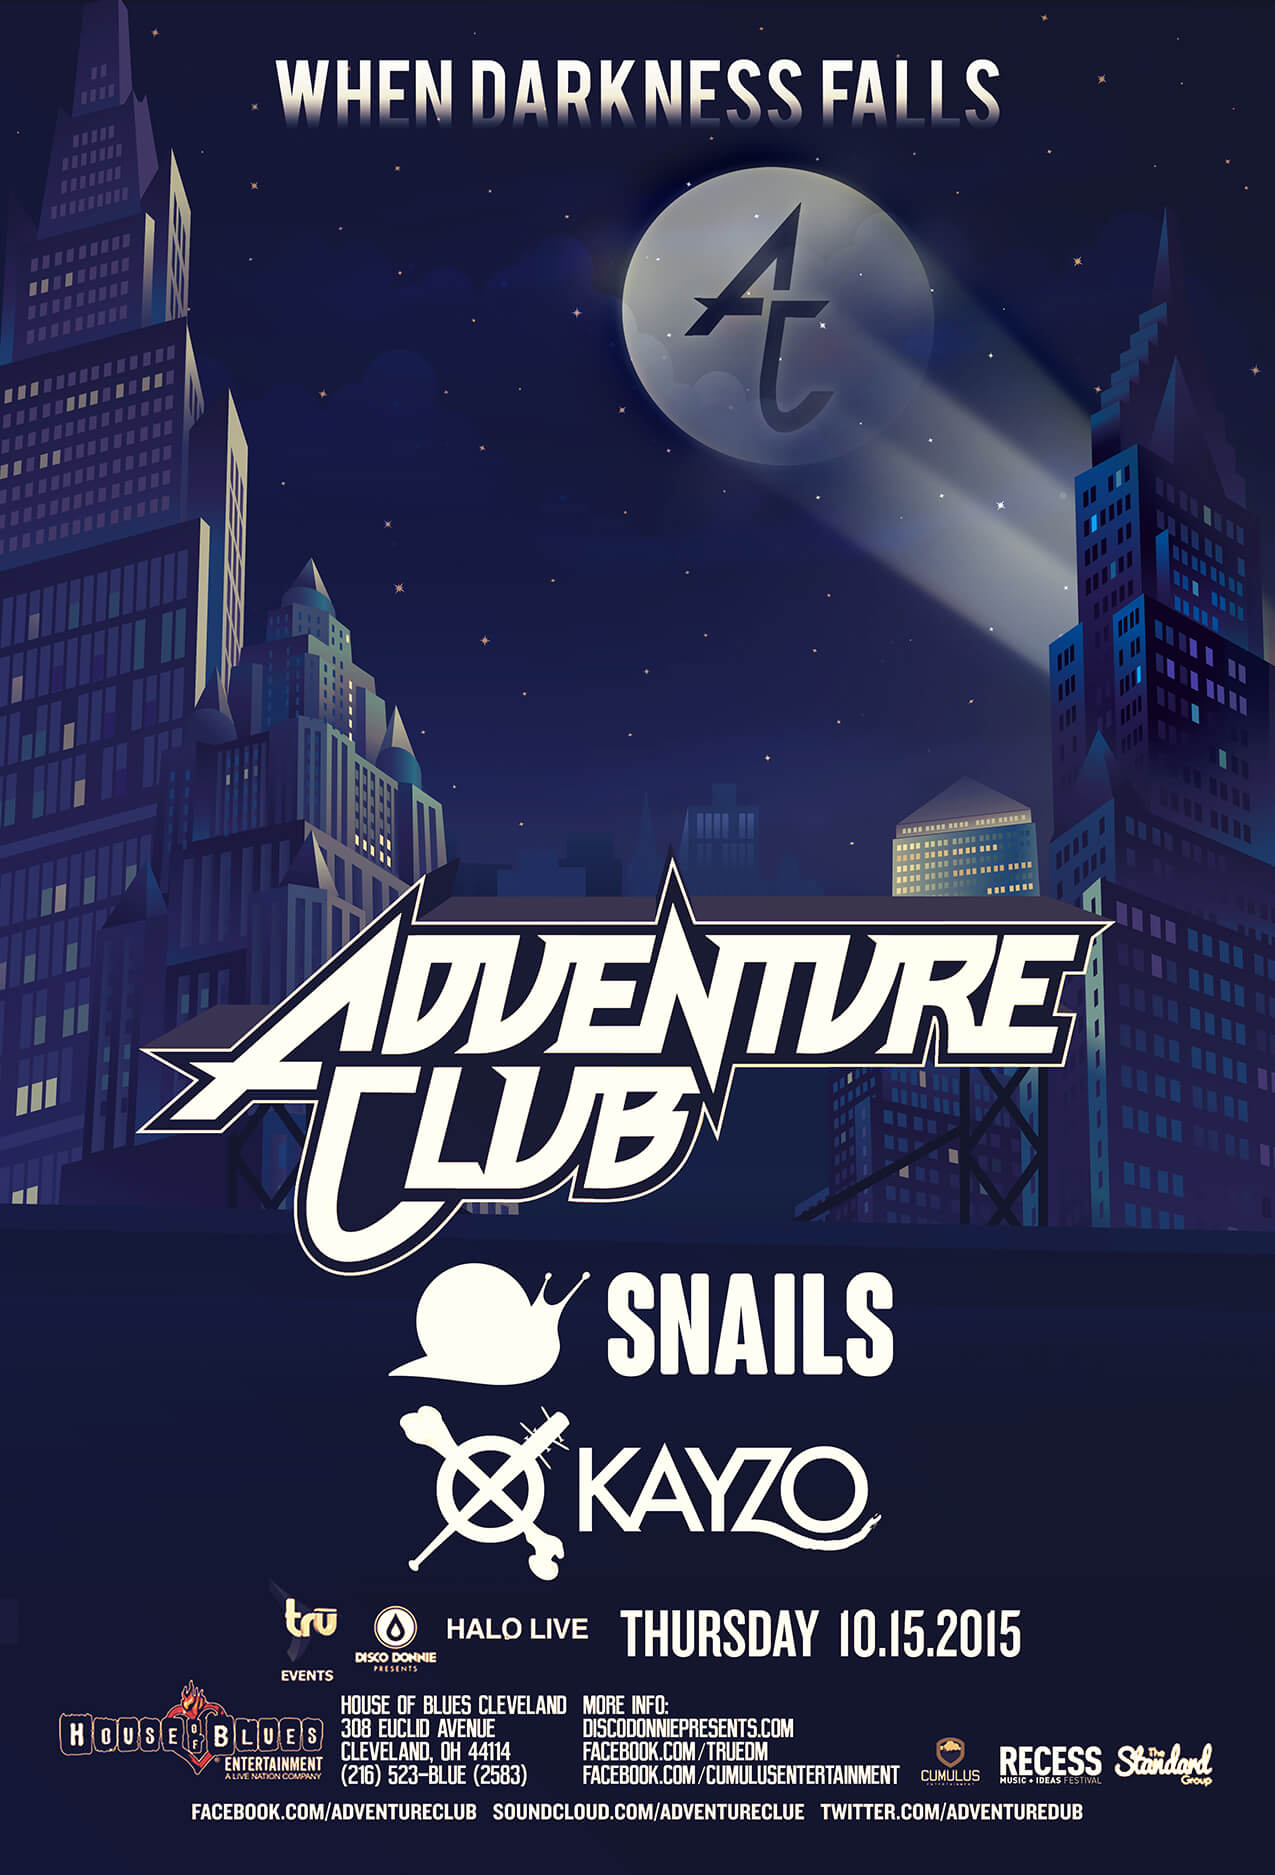 Kayzo Snails Adventure Club at House of Blues Cleveland